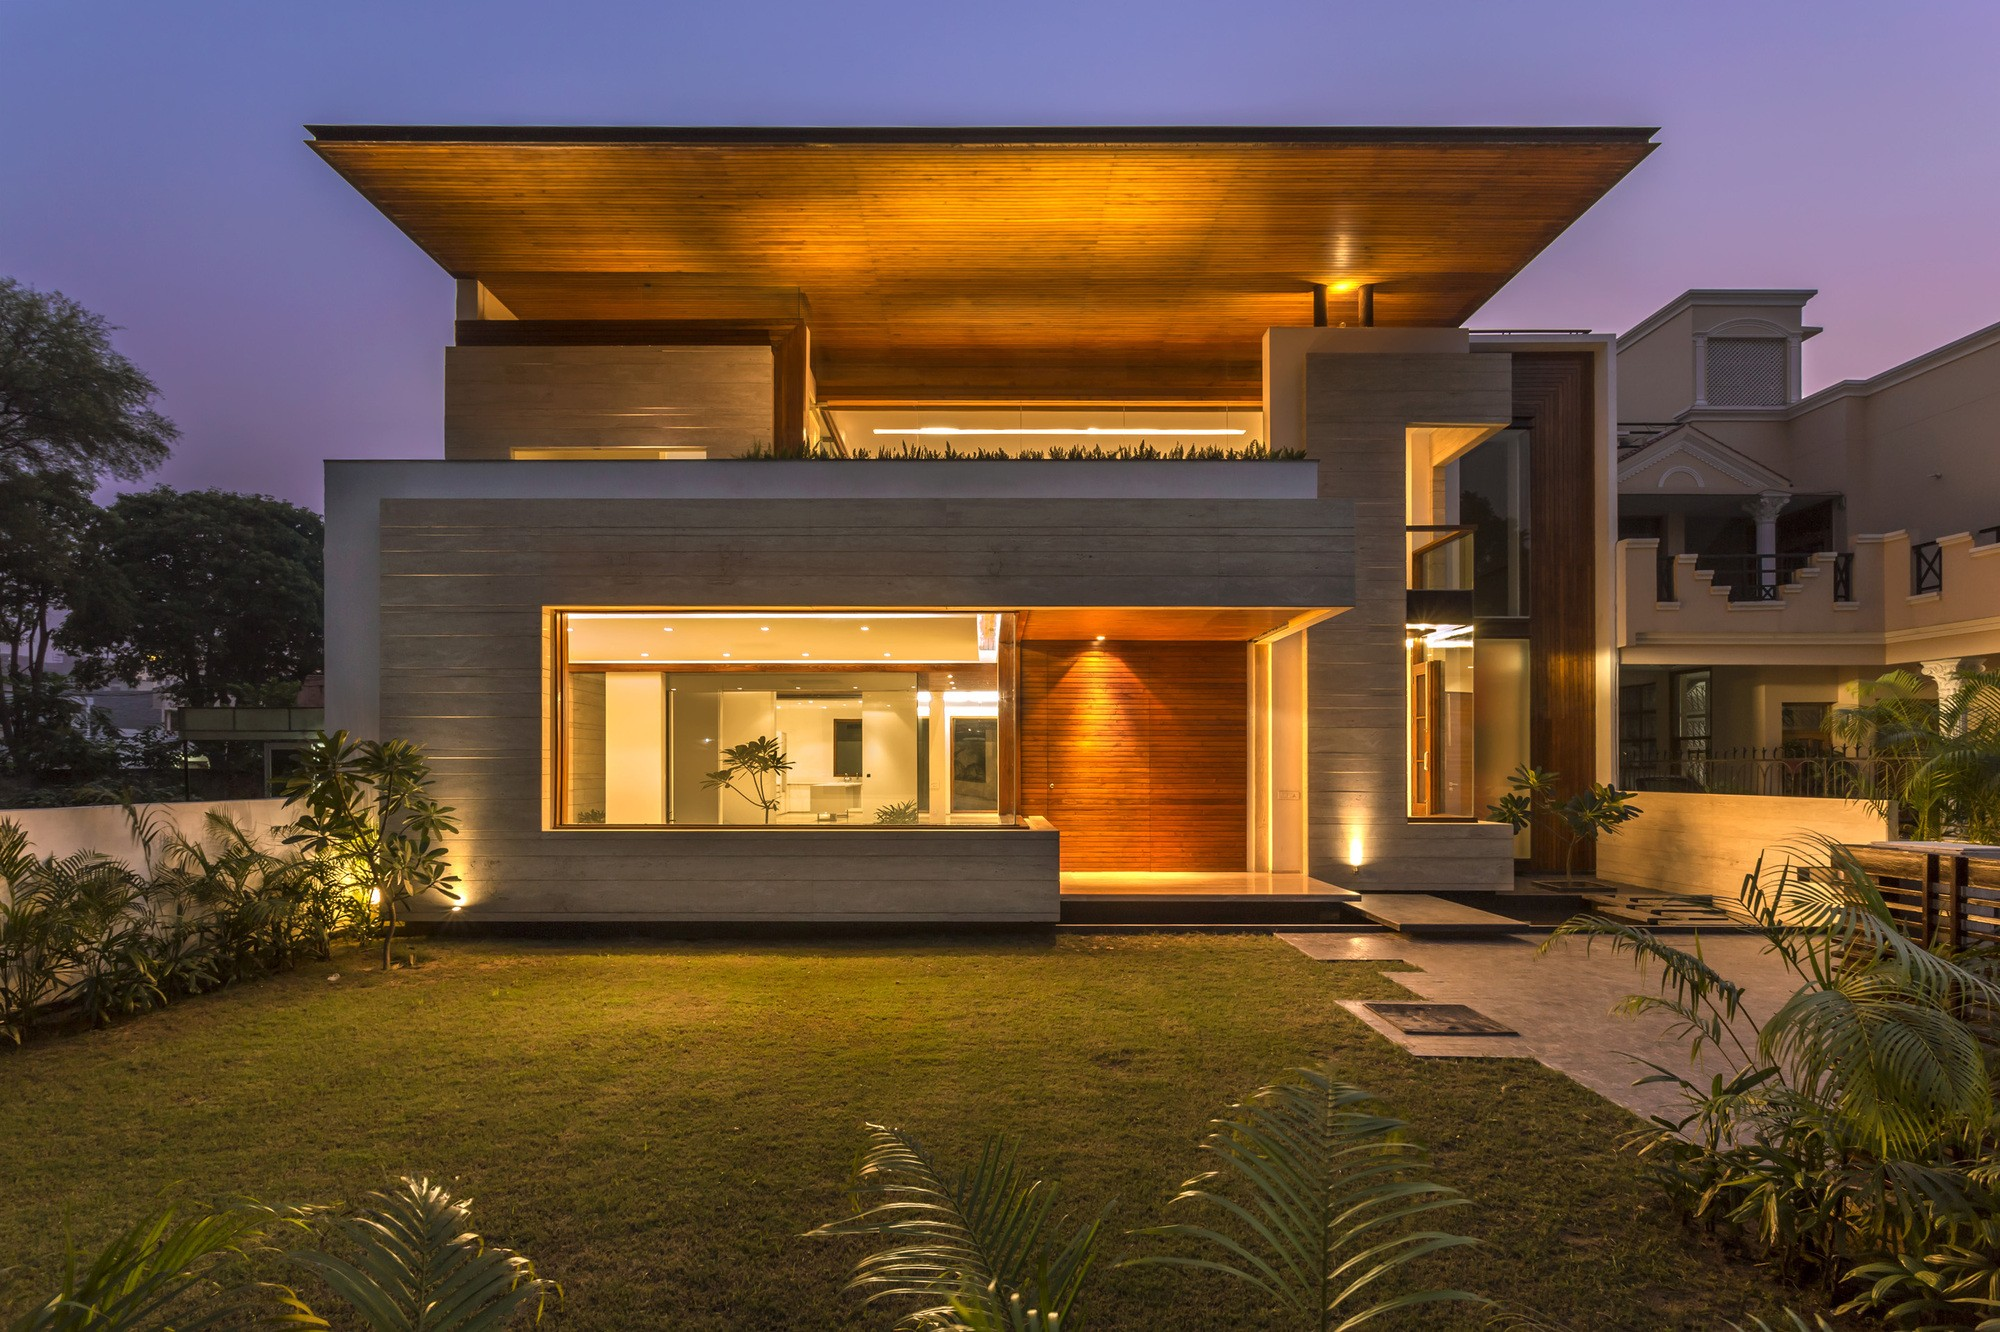 Superb house in mohali punjab india for Home design exterior india